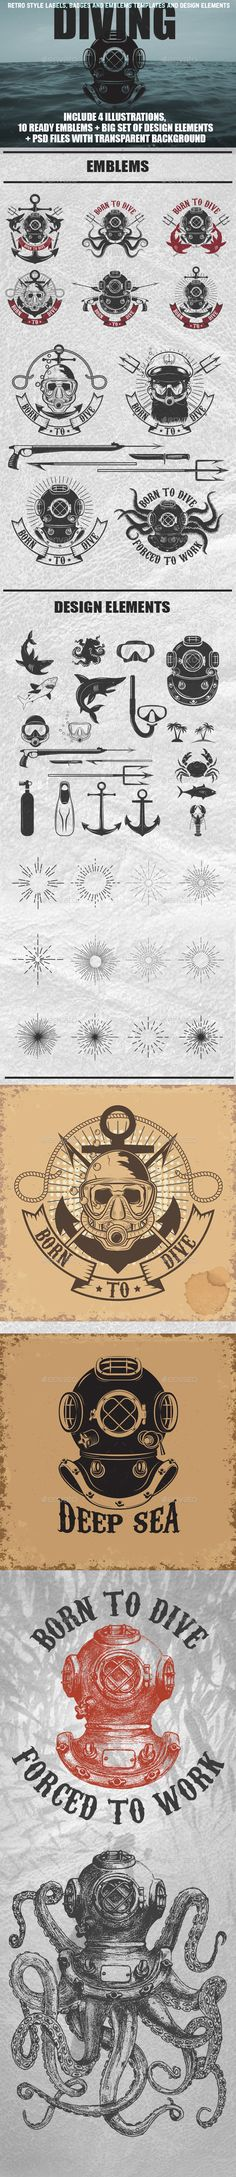 Set of Vintage Diver Helmets, Diver Label Templates and Design Elements - Retro Technology